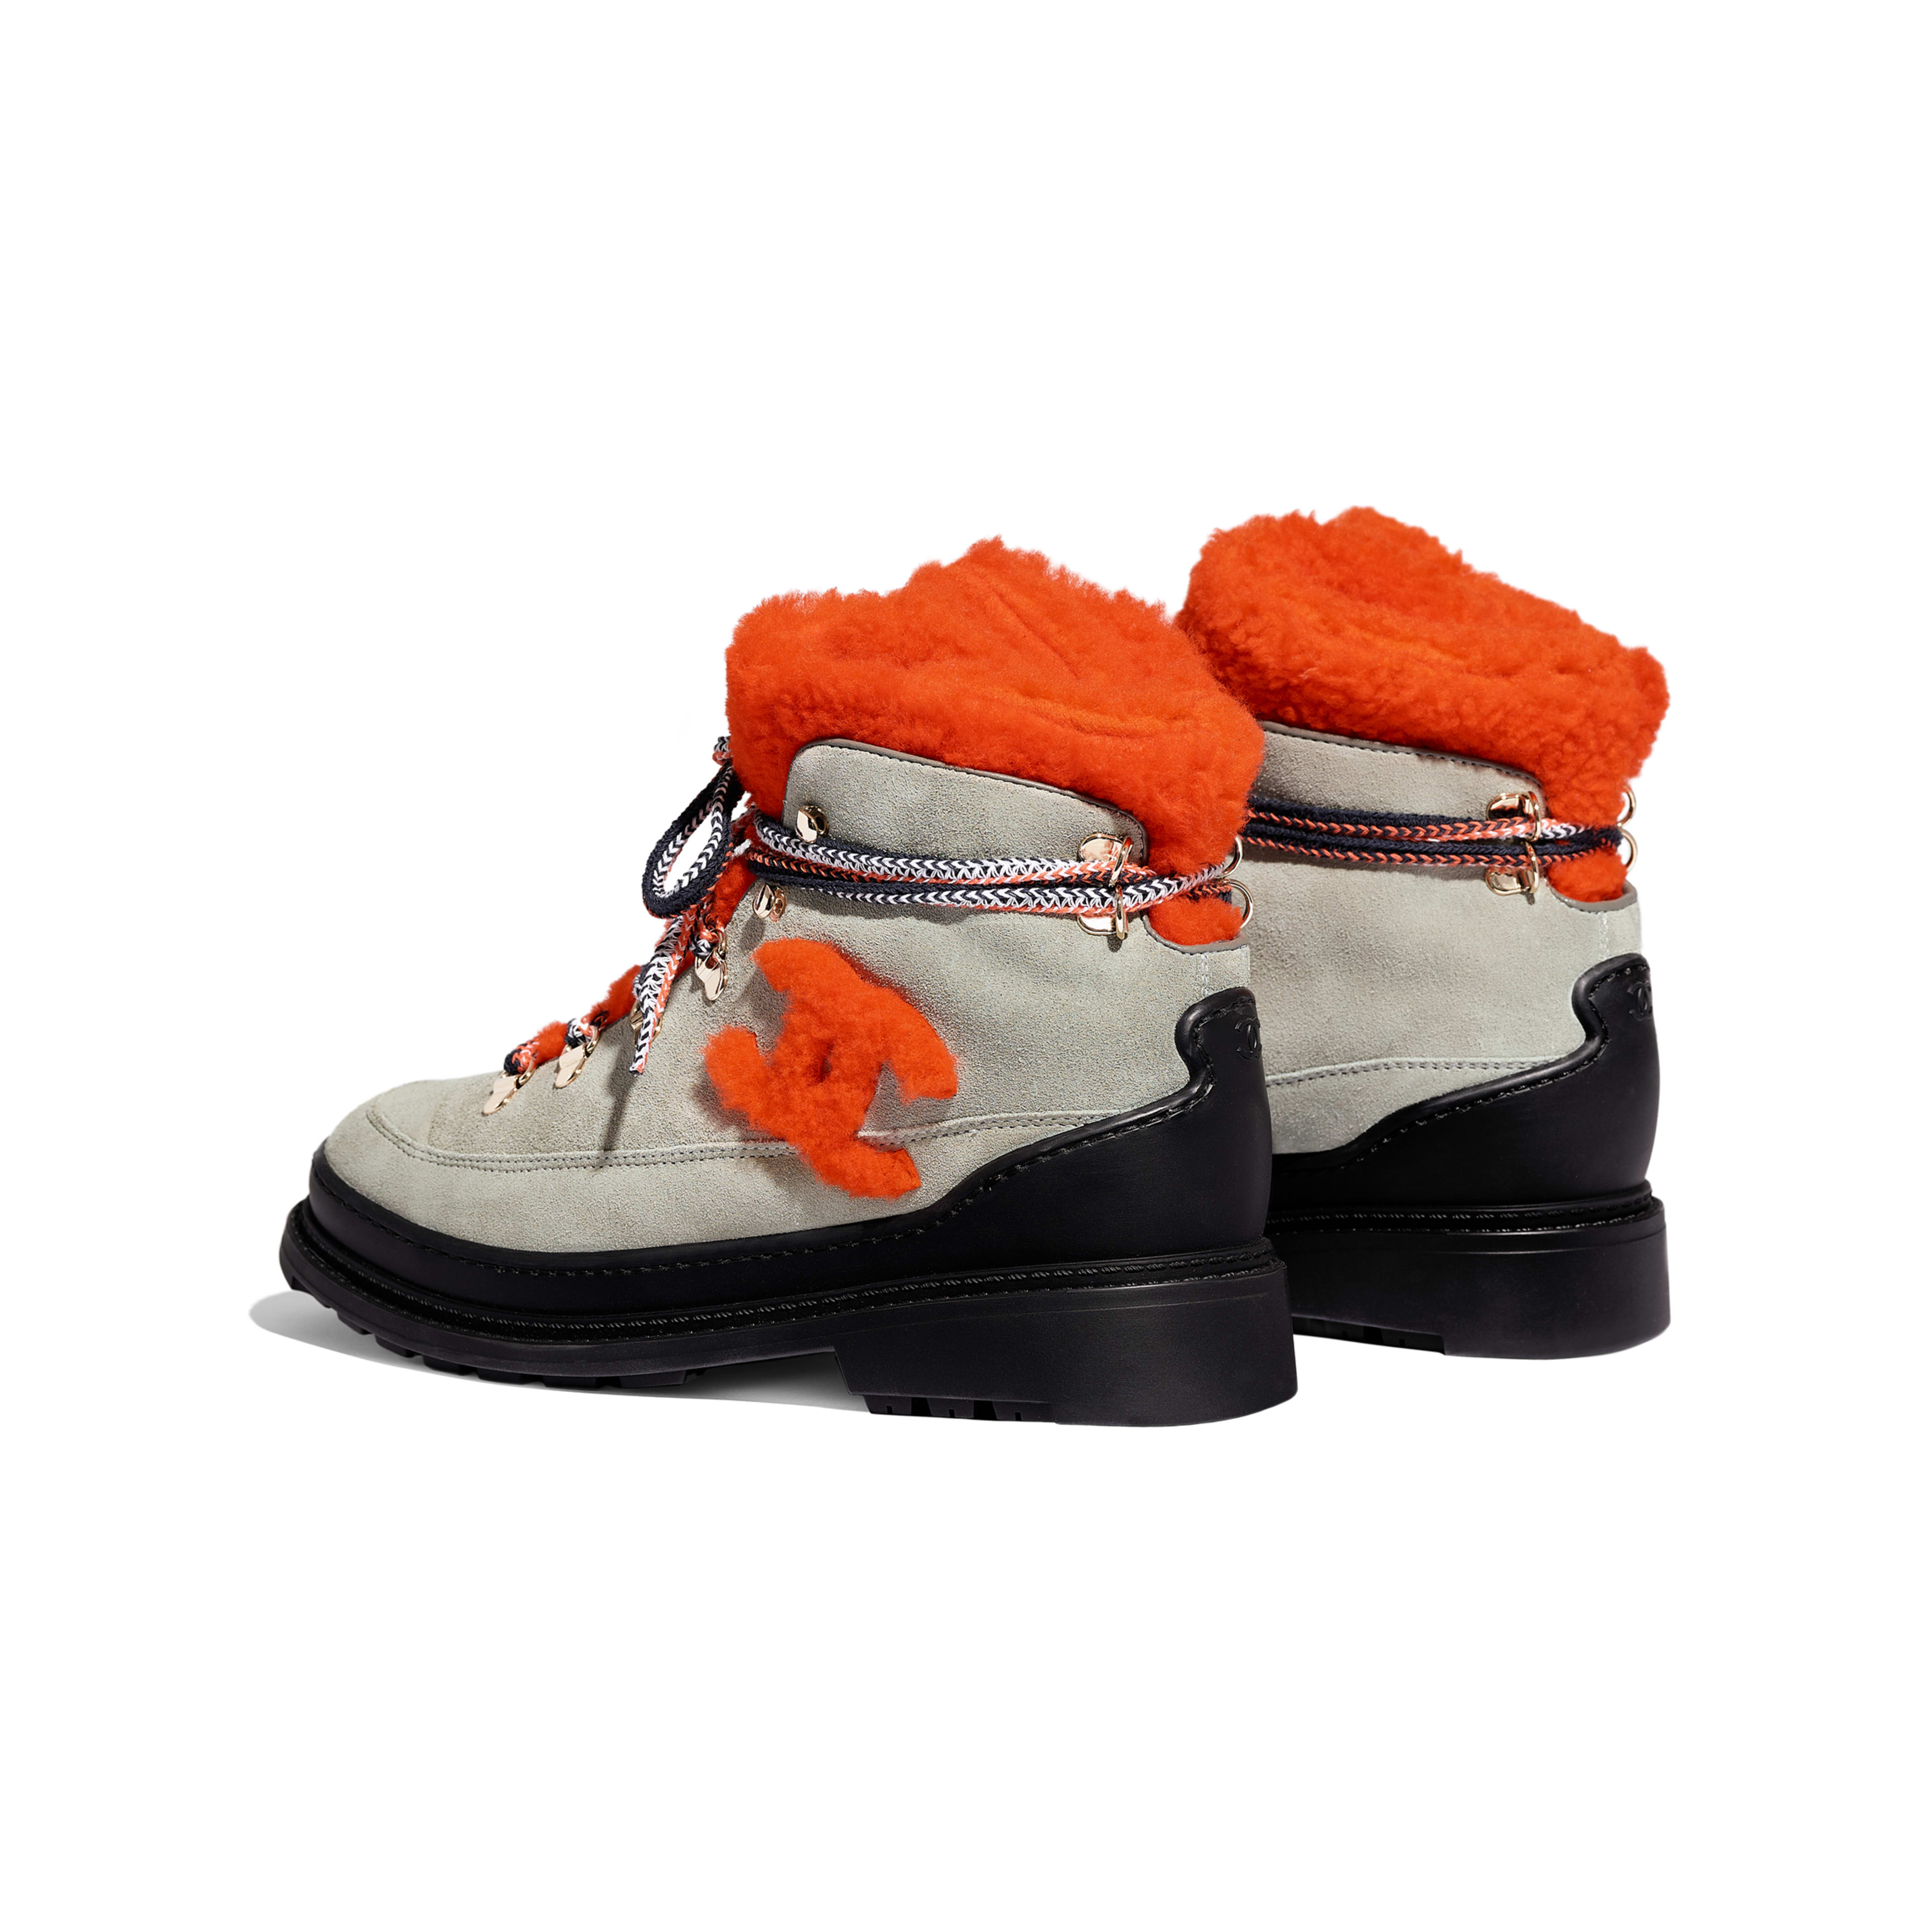 Lace-Ups - Gray & Orange - Suede Calfskin & Shearling - Other view - see full sized version